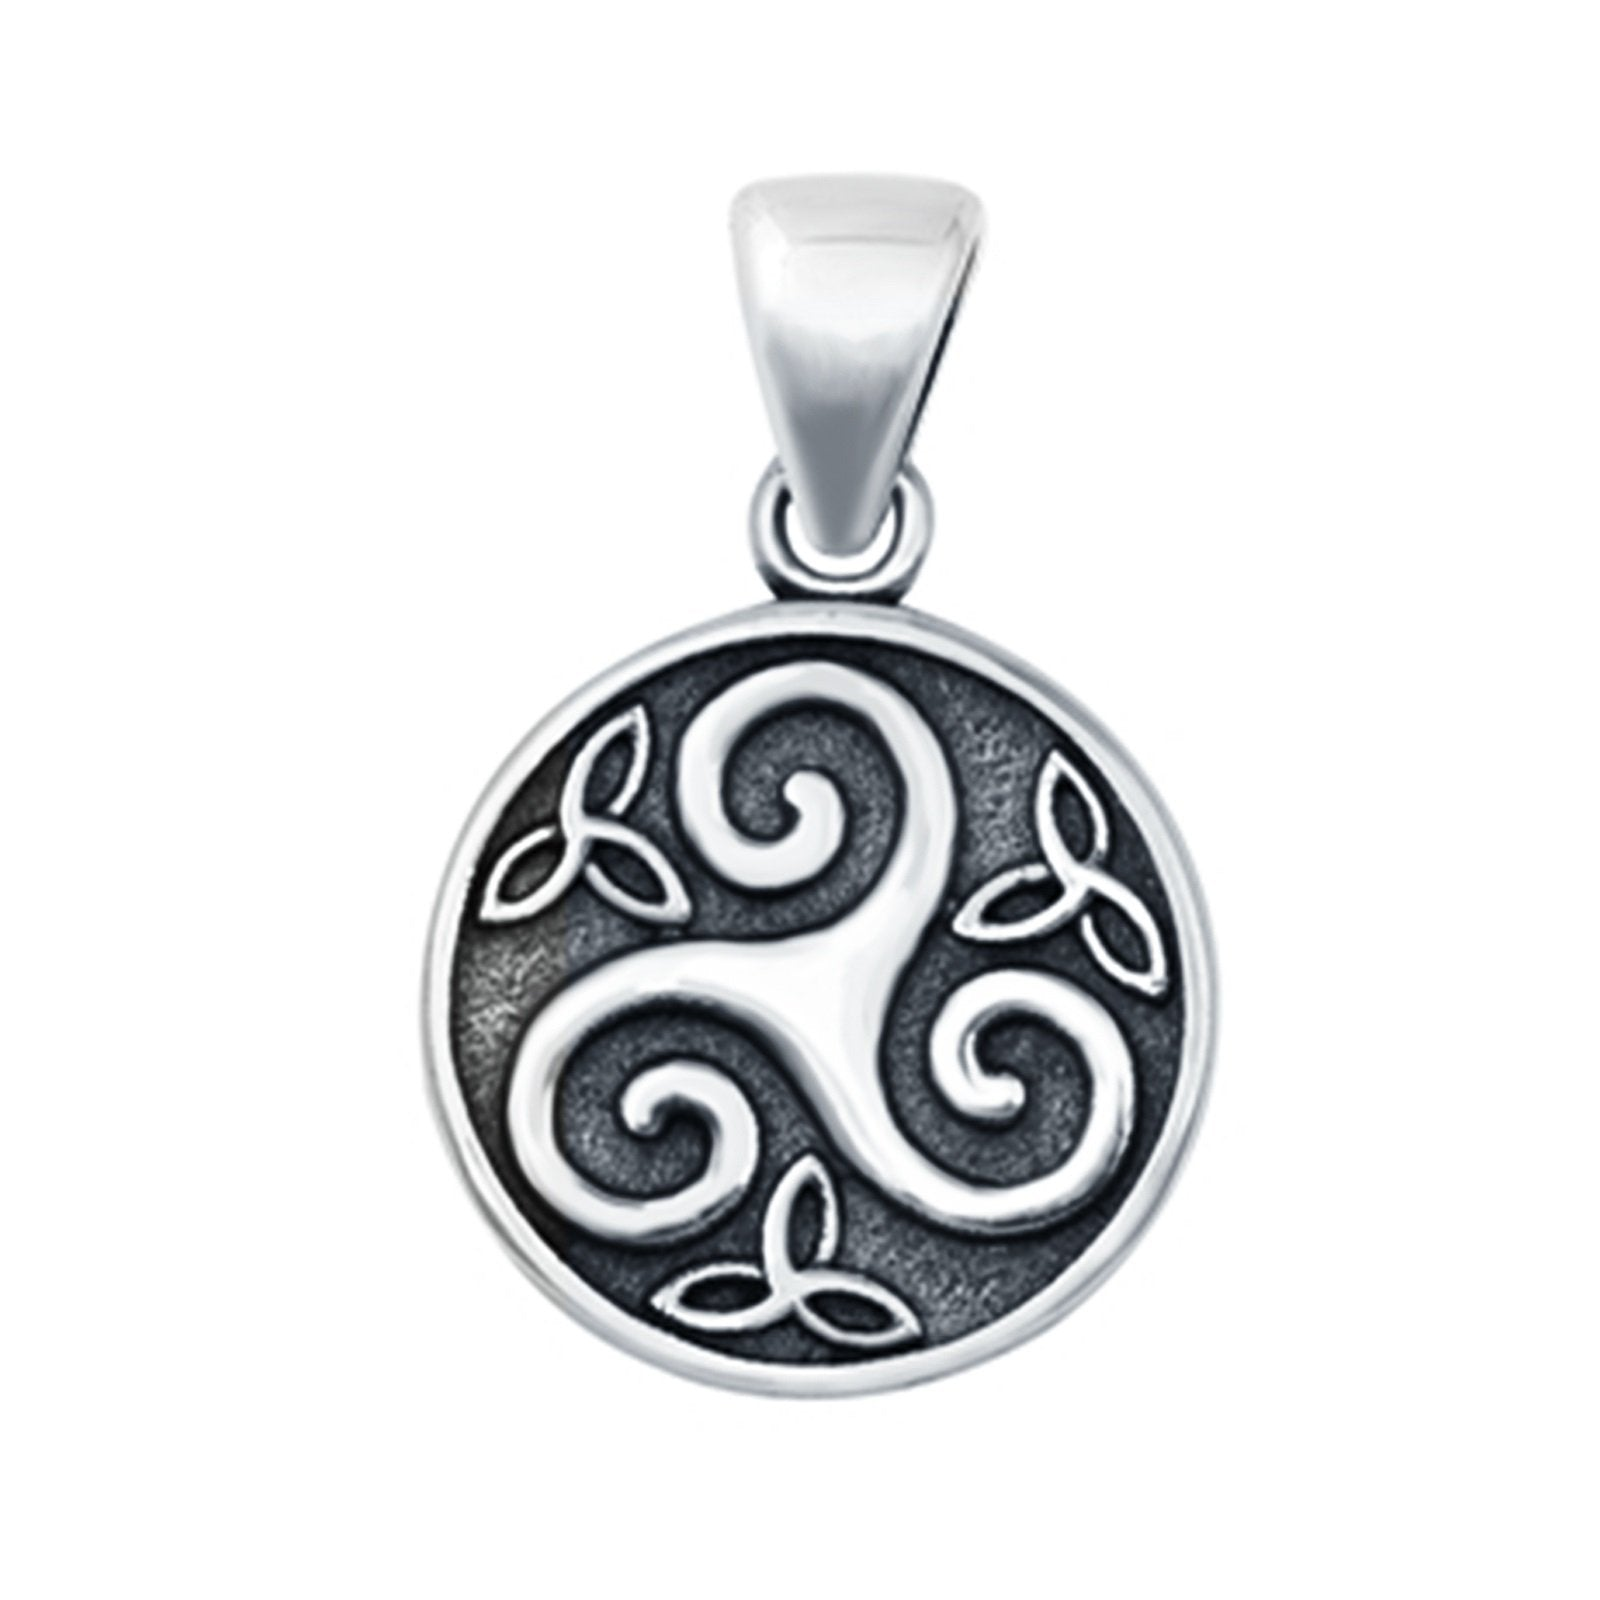 925 Sterling Silver Triskelion Pendant Charm Fashion Jewelry